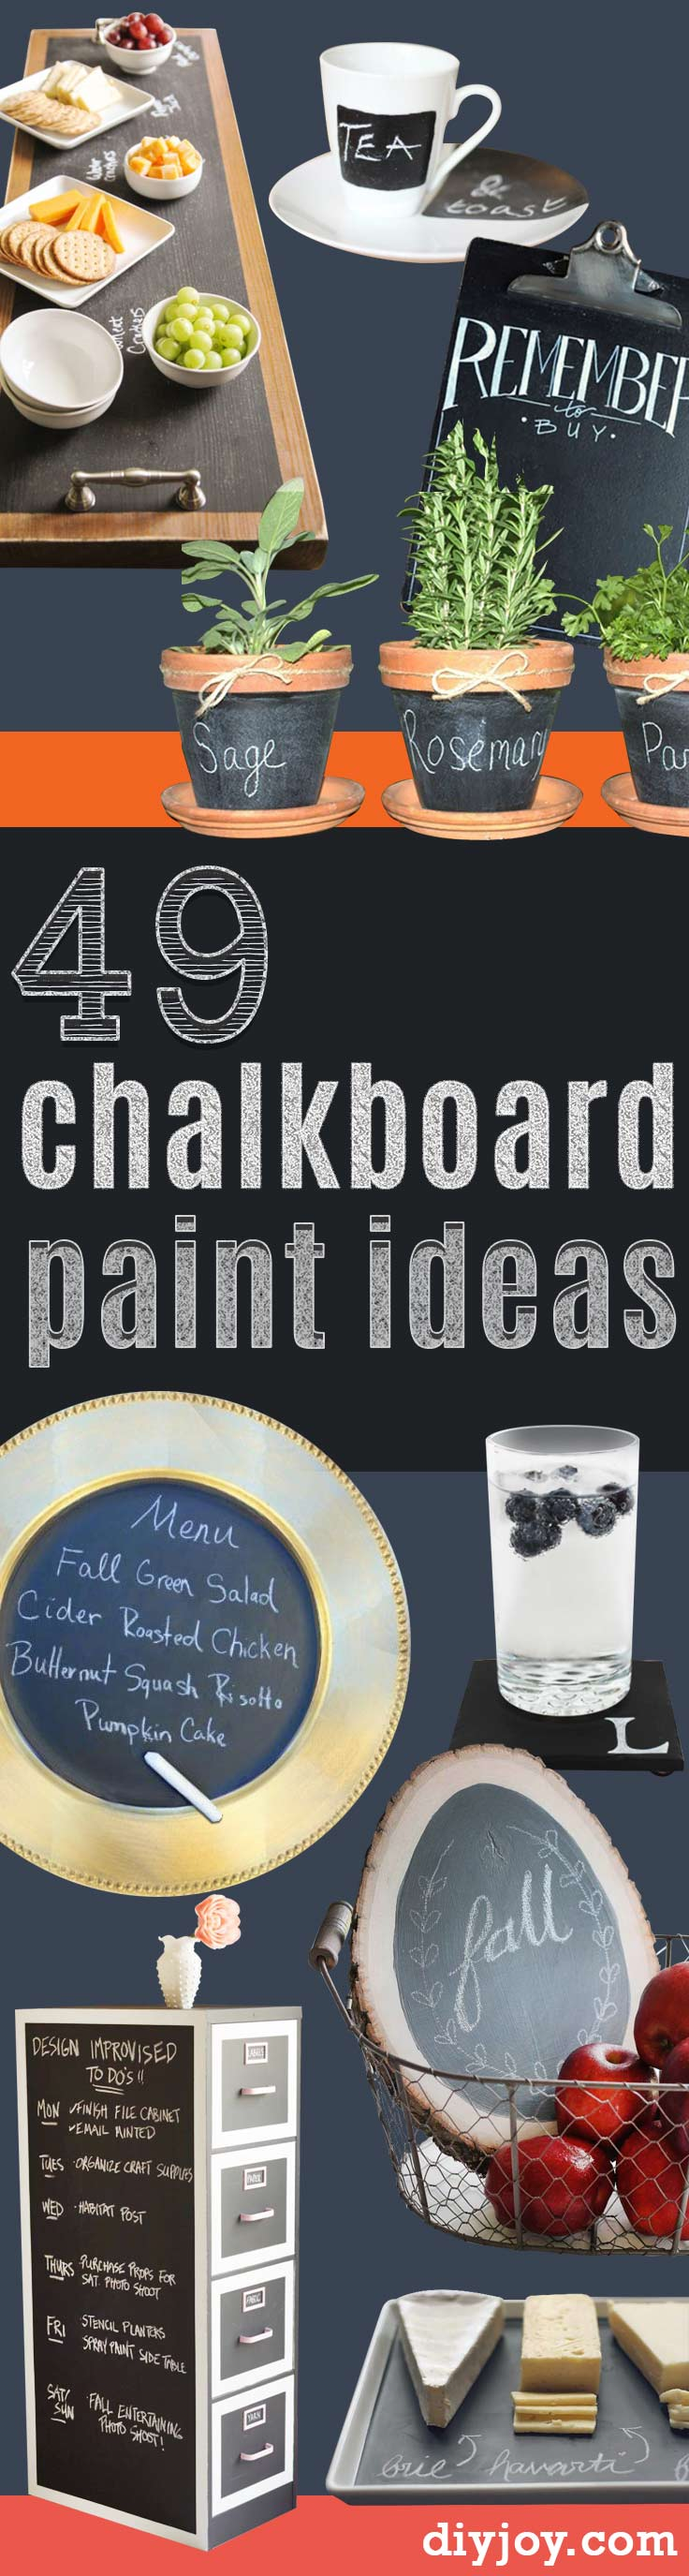 52 Diy Chalkboard Paint Ideas For Furniture And Decor Diy Joy